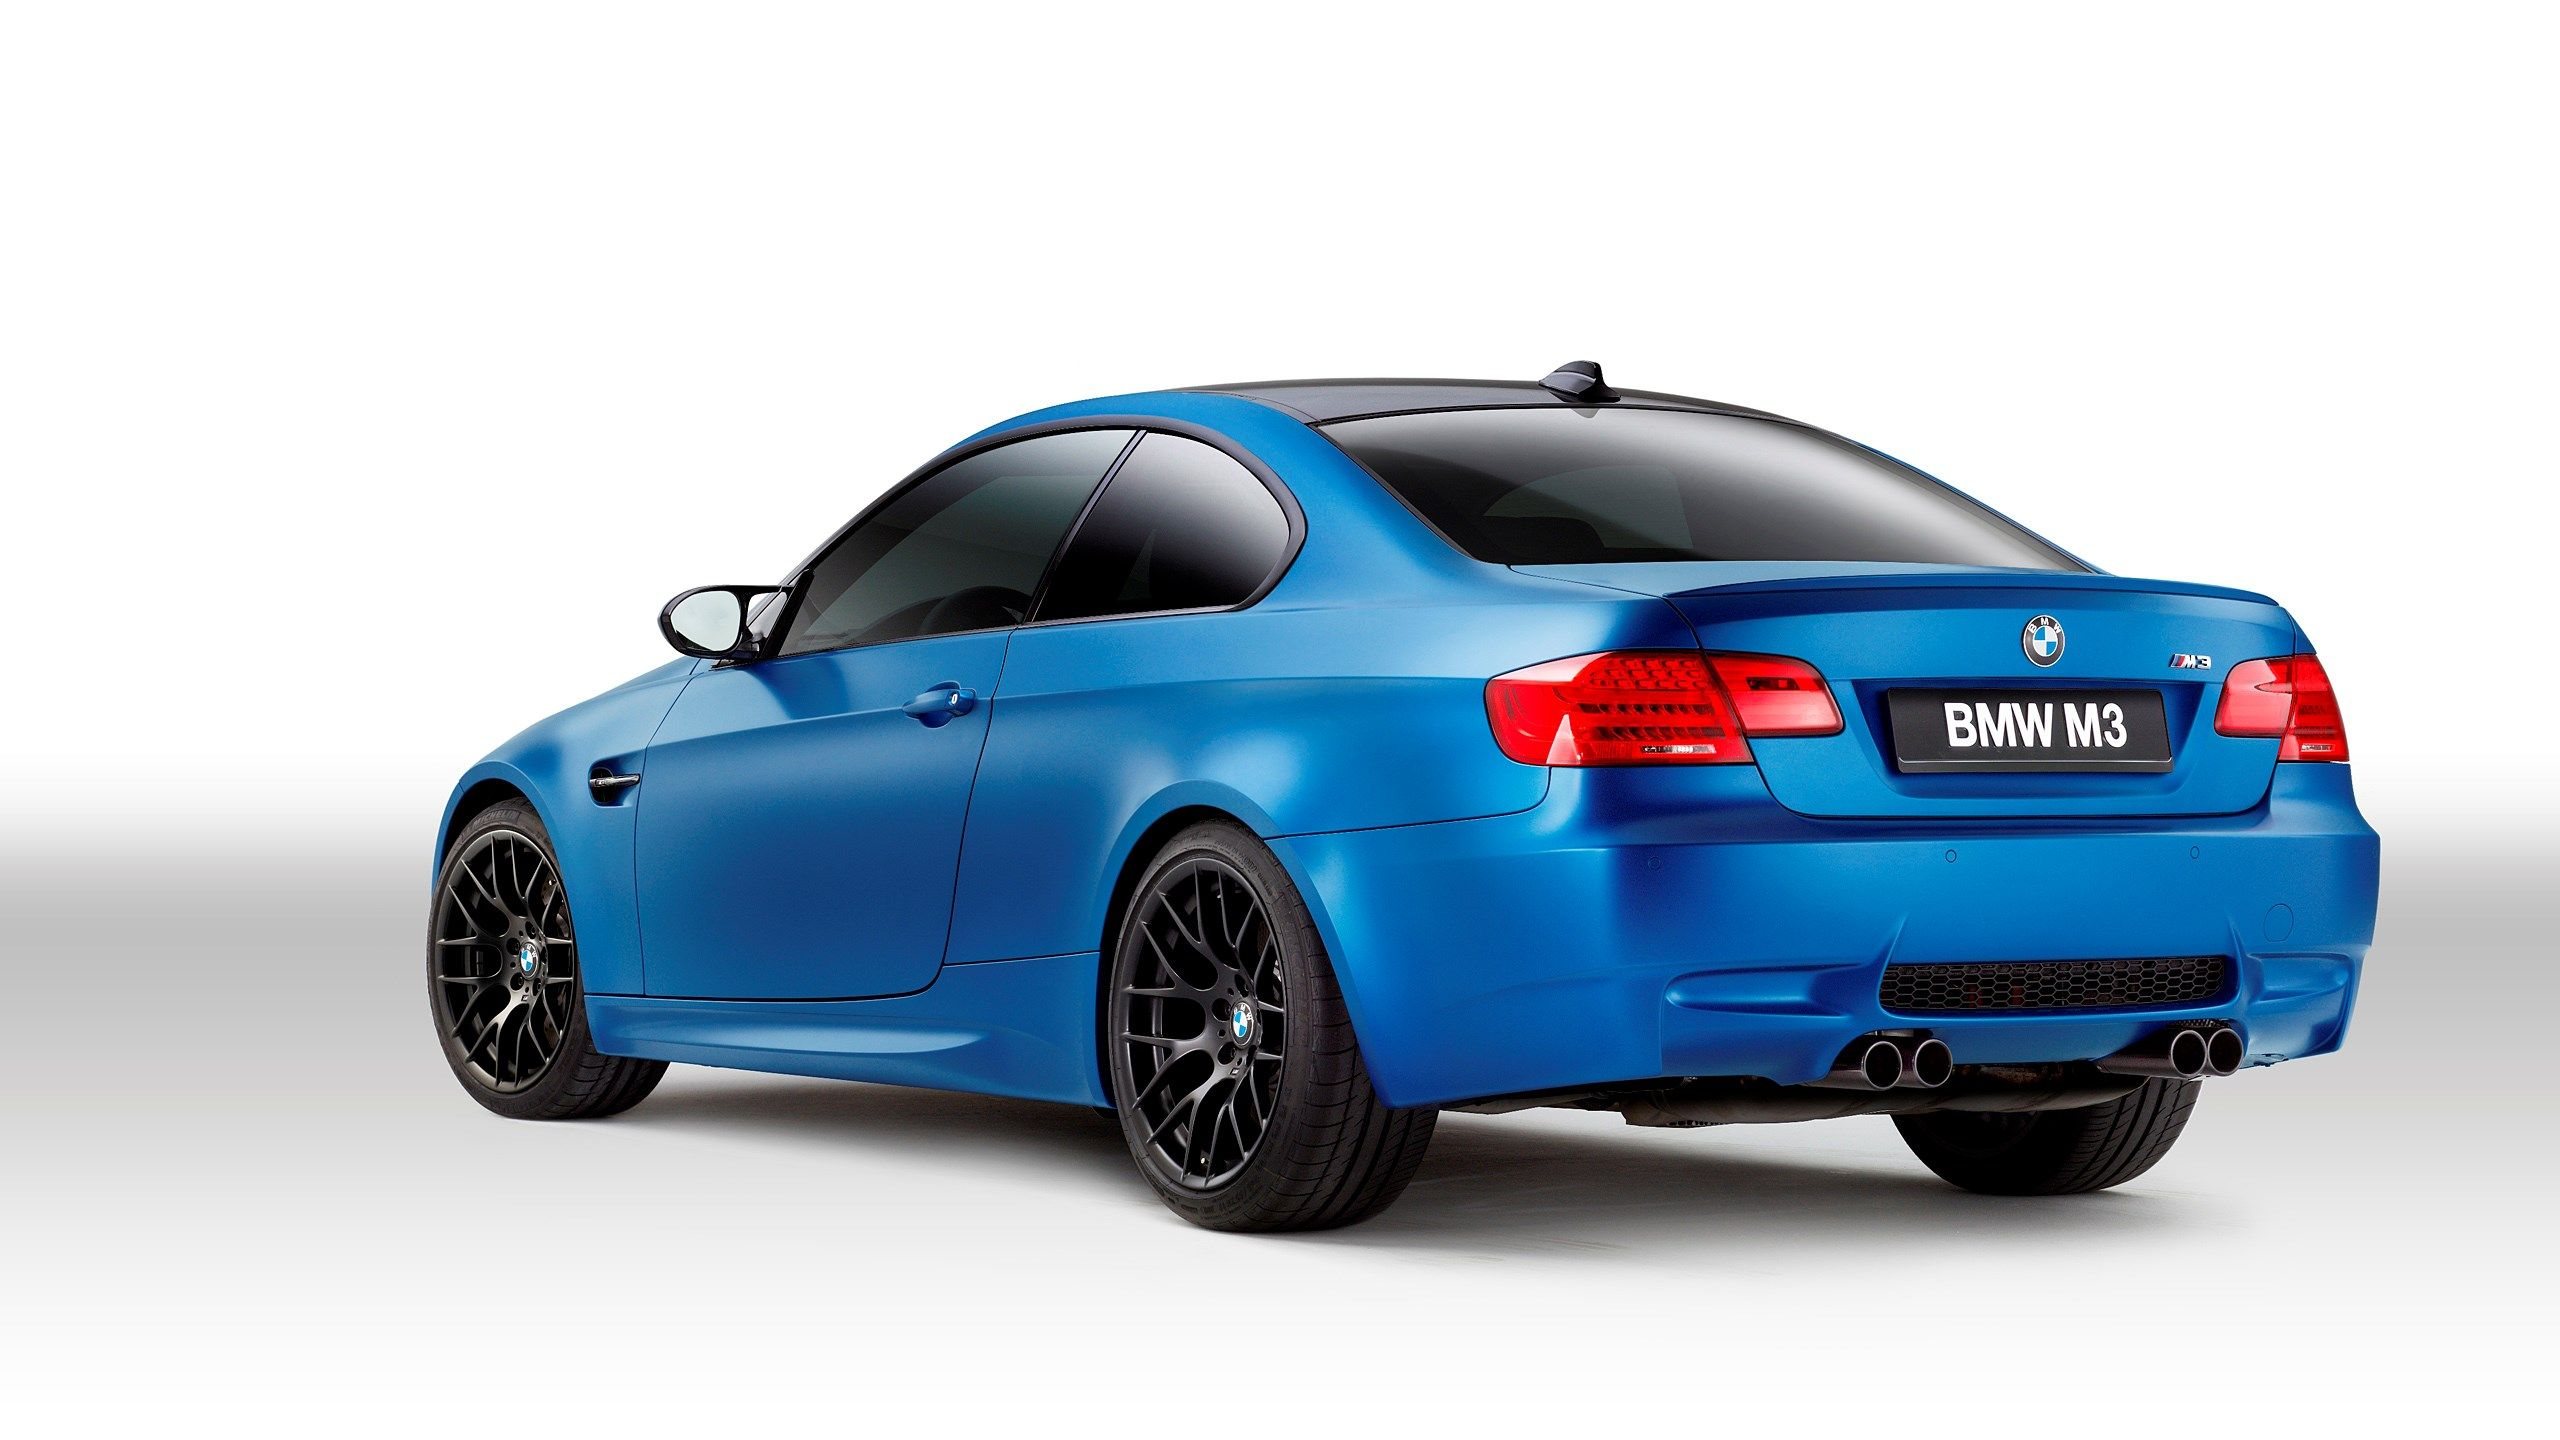 2017 03 12 Bmw M3 Coupe Picture Hd 1677171